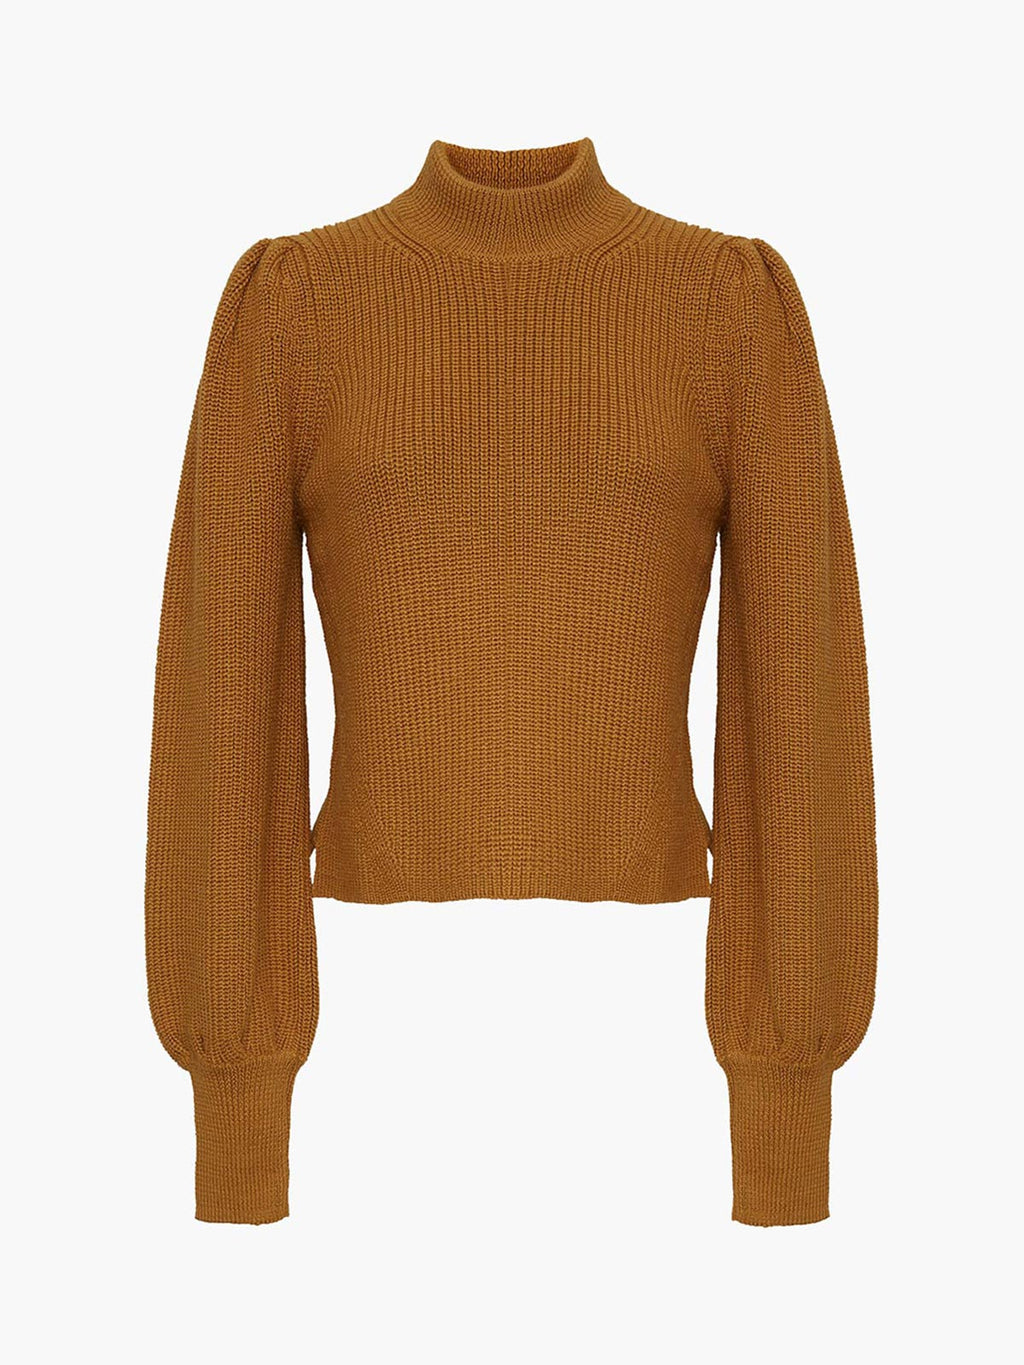 Mia Sweater | Mustard